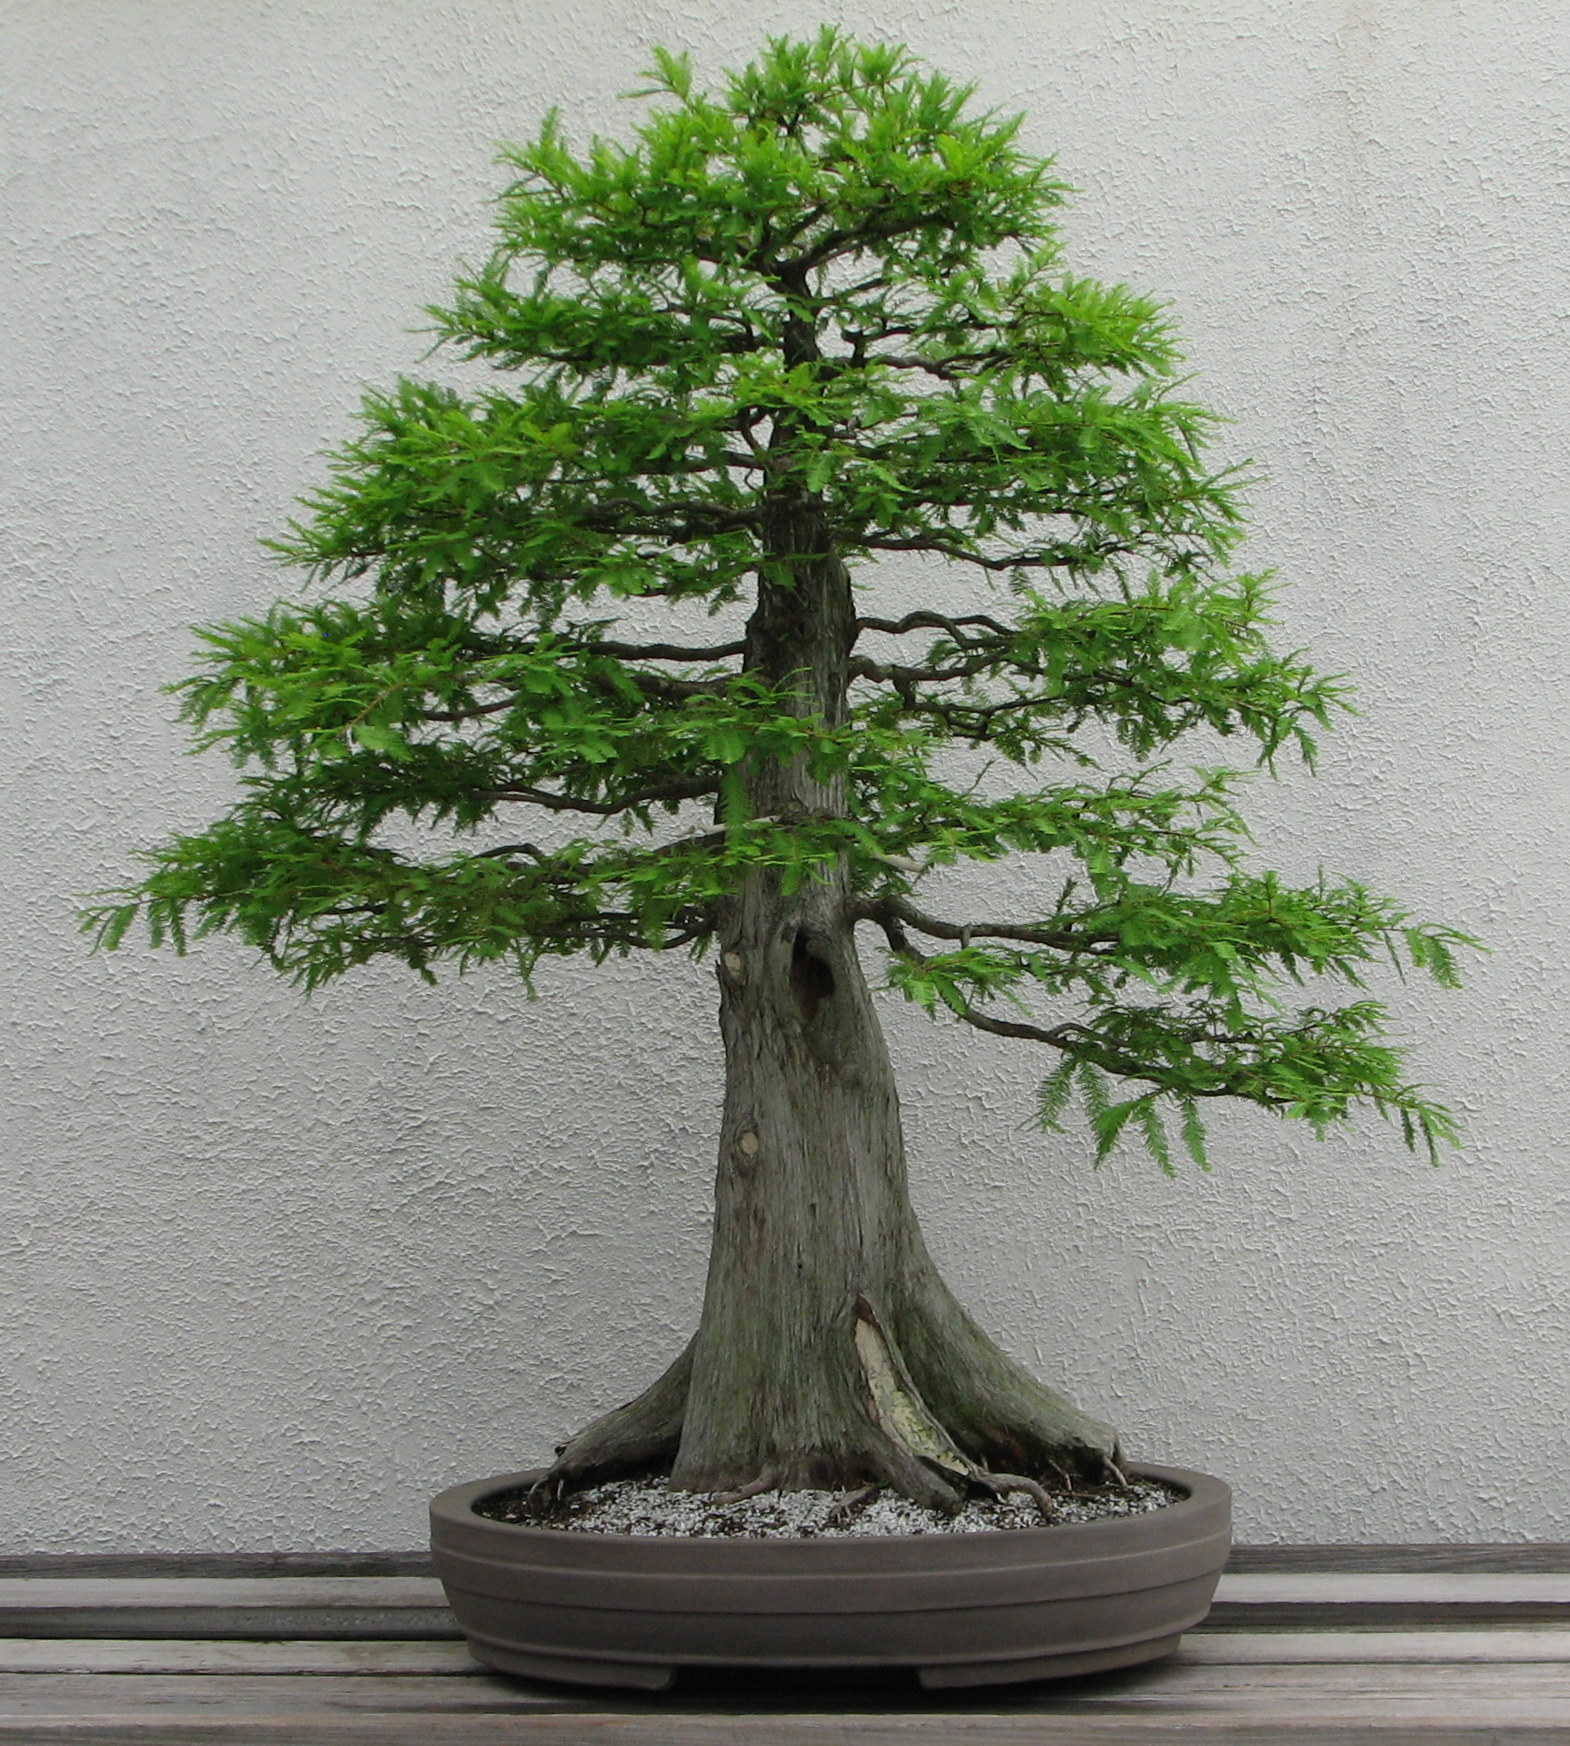 How to take care of a bonsai tree - Formal Upright Style Bonsai Bonsai Styles